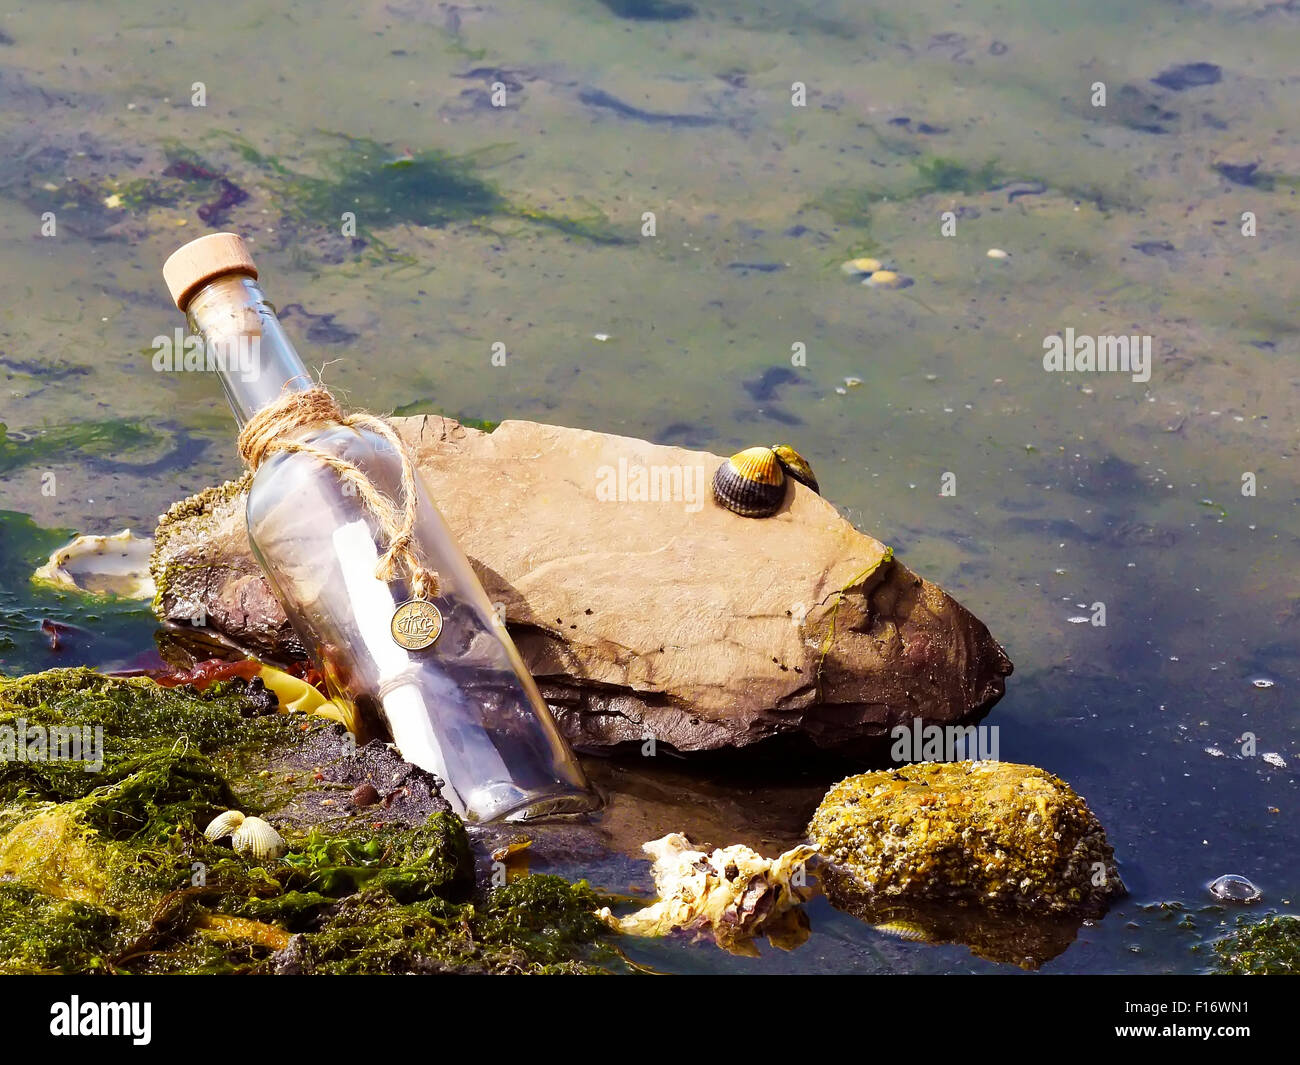 Message in a bottle washed ashore on the beach. - Stock Image